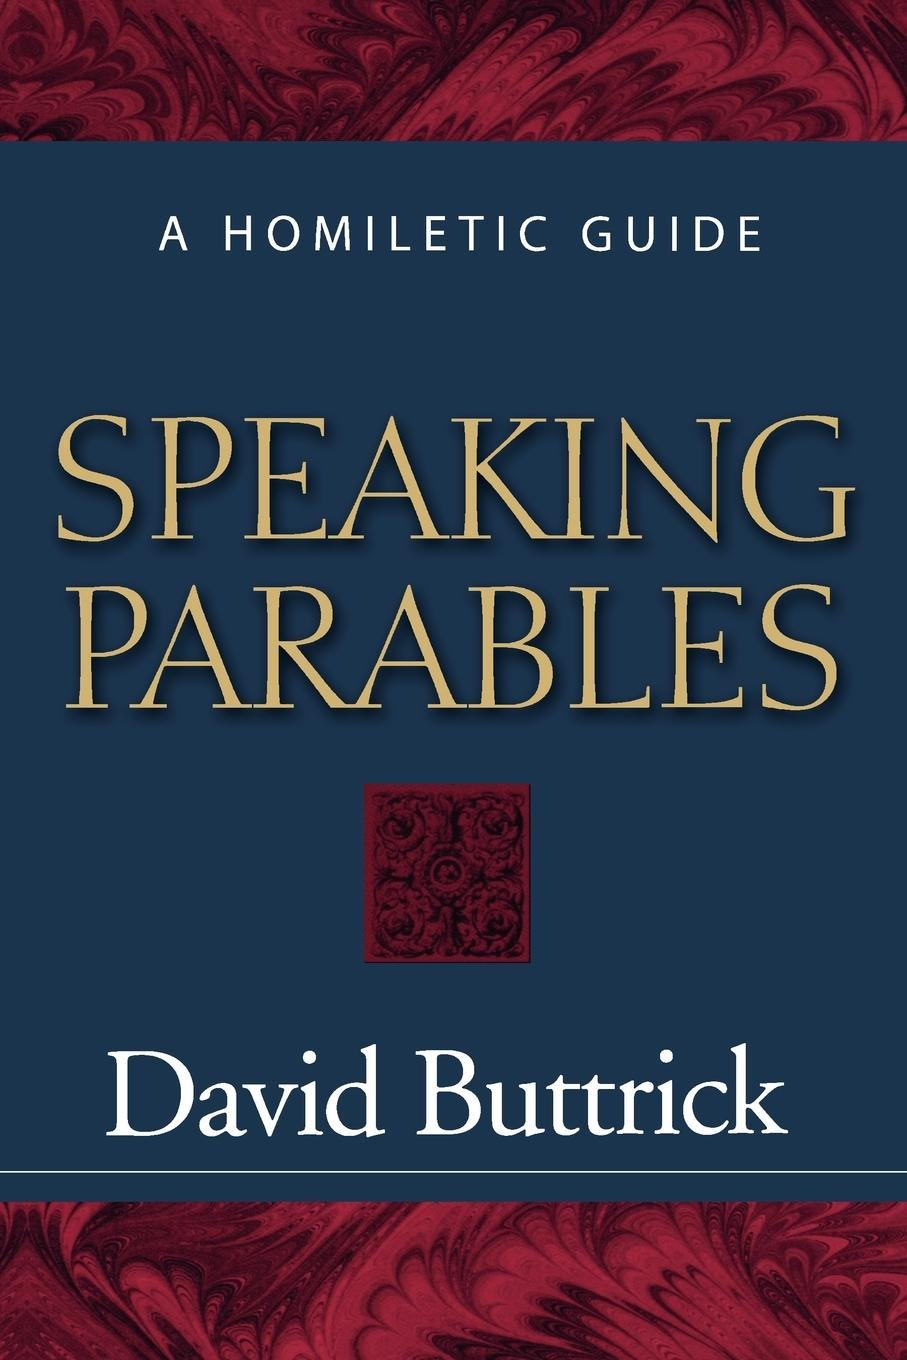 Speaking Parables: A Homiletic Guide PDF